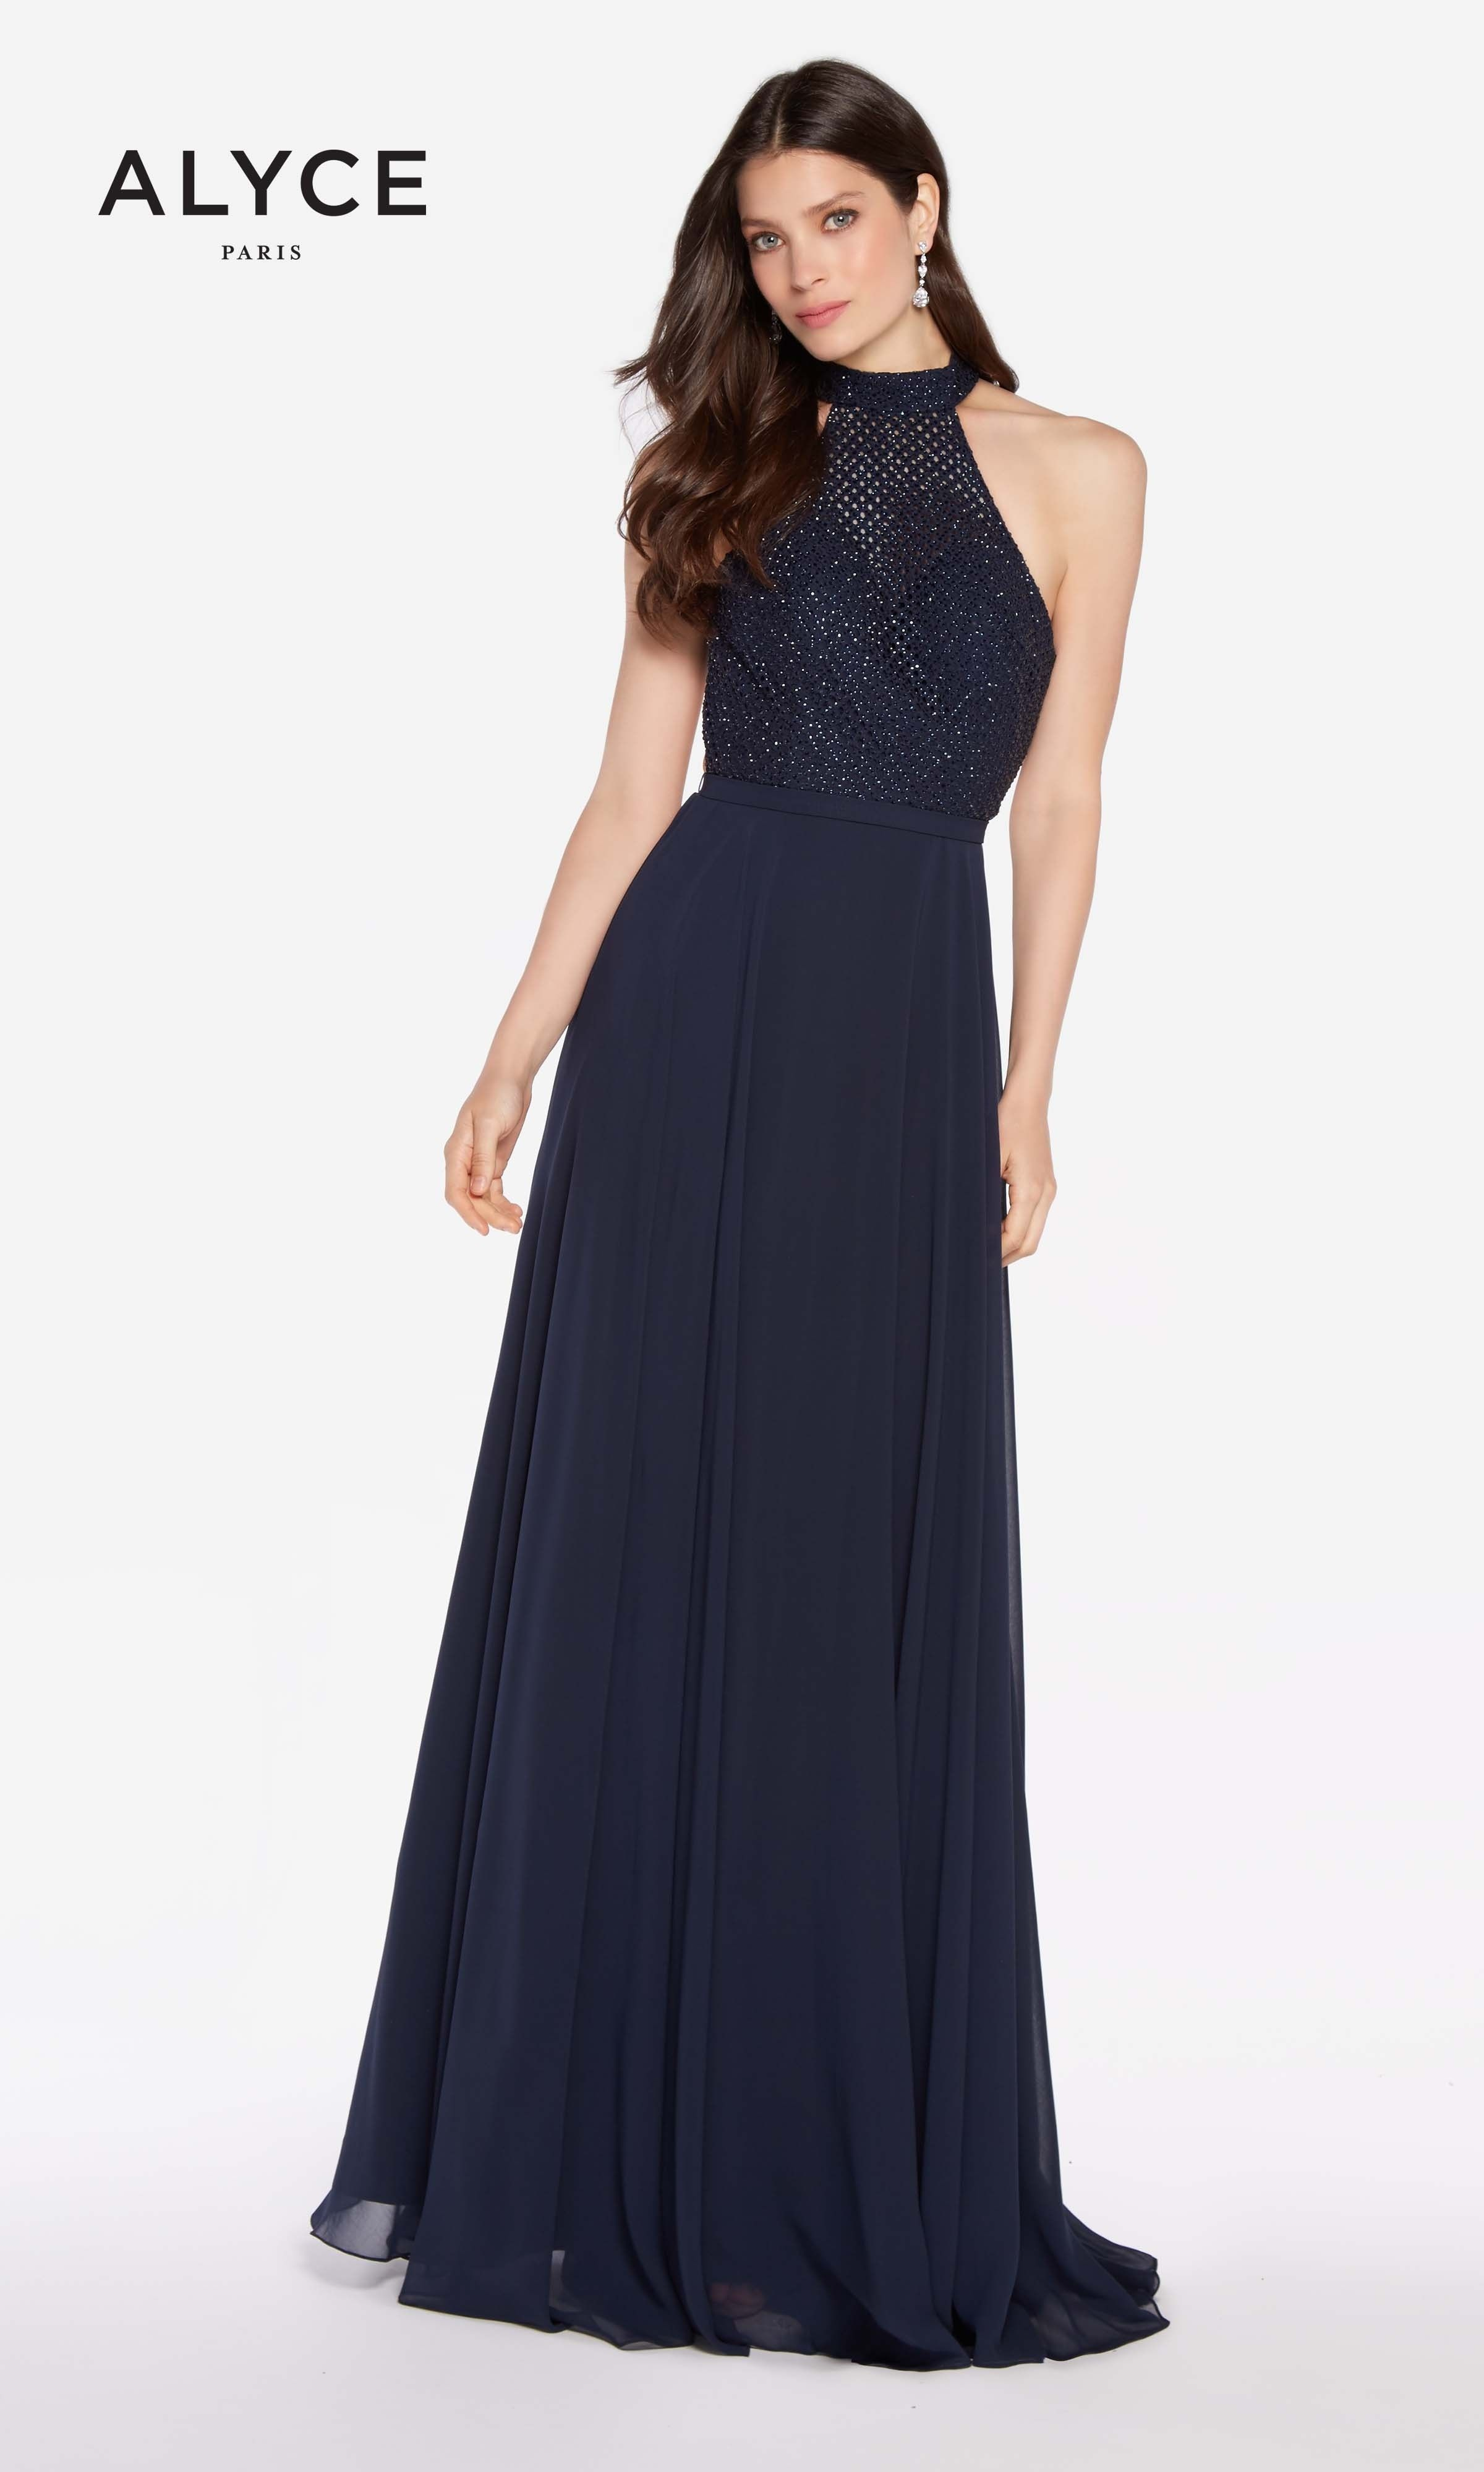 8ae3b0af720 Timeless Alyce 60160 won t disappoint. The halter top chiffon A-line ...